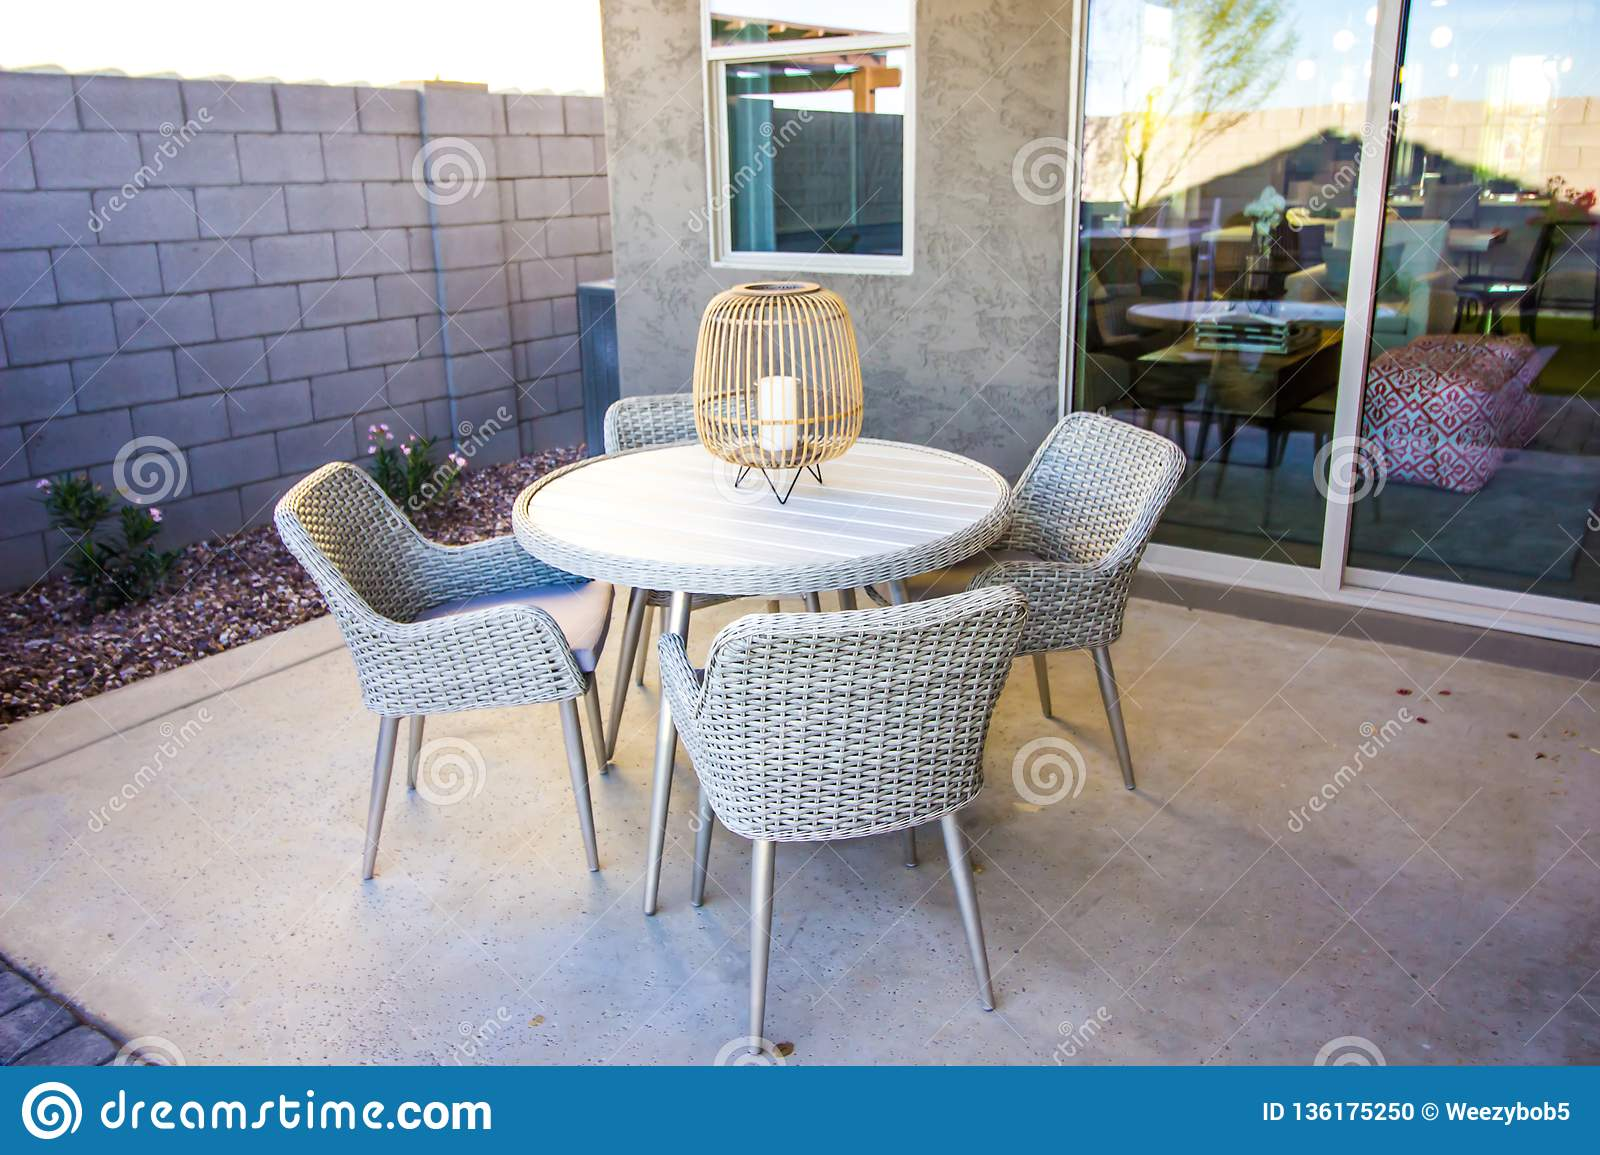 Remarkable Outdoor White Patio Wicker Furniture Stock Photo Image Of Caraccident5 Cool Chair Designs And Ideas Caraccident5Info